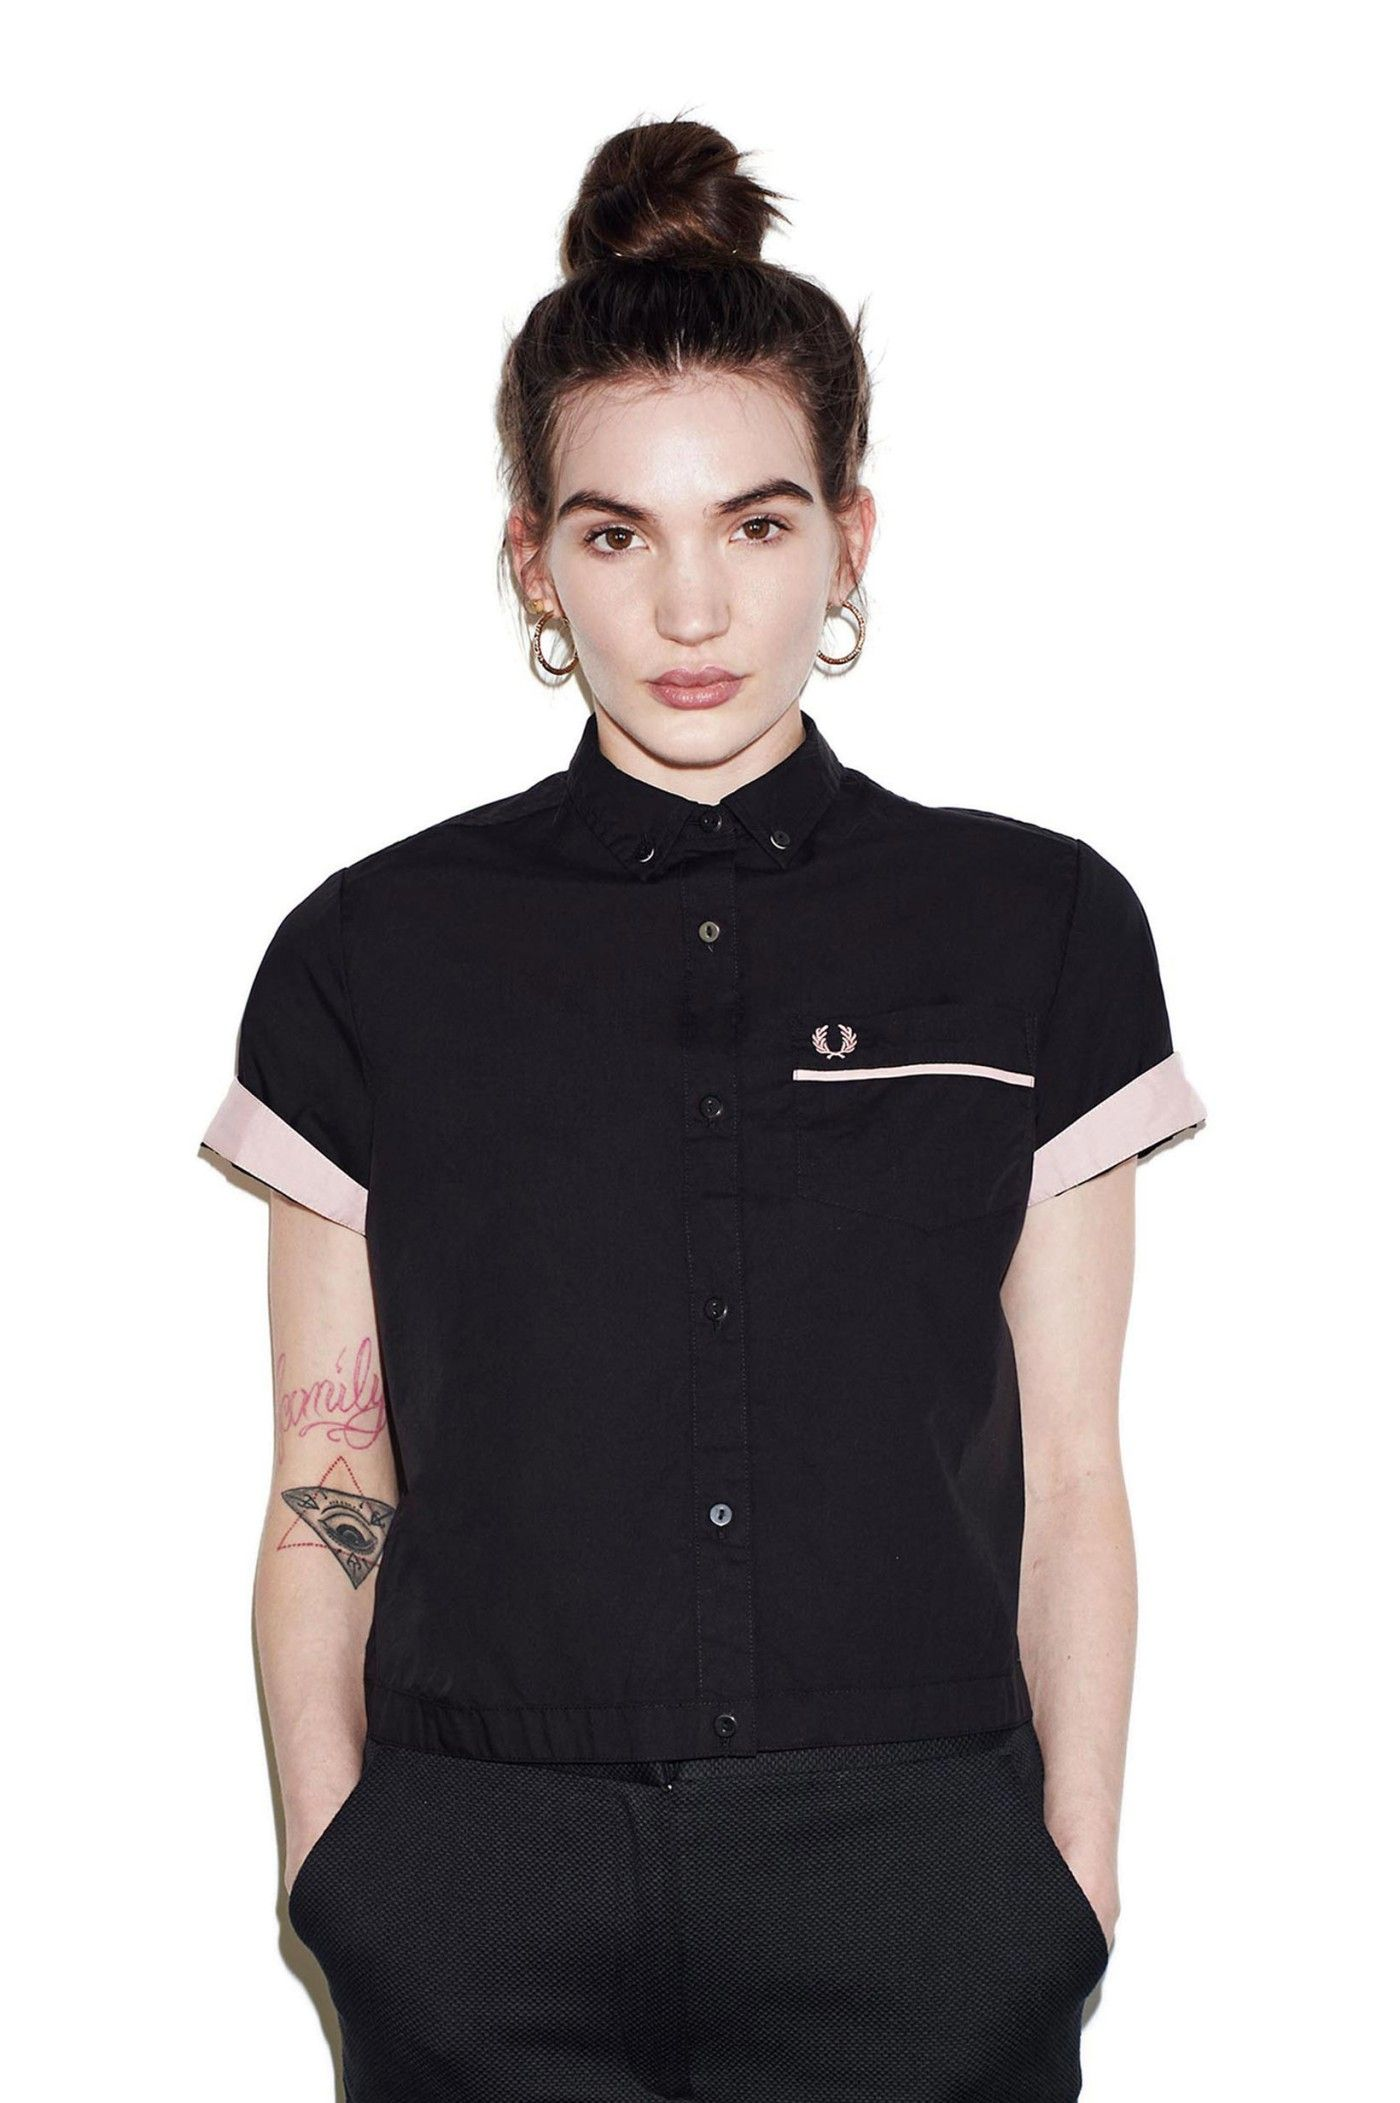 f747d218 Fred Perry - Amy Winehouse Bowling Shirt Black | My Style | Bowling ...